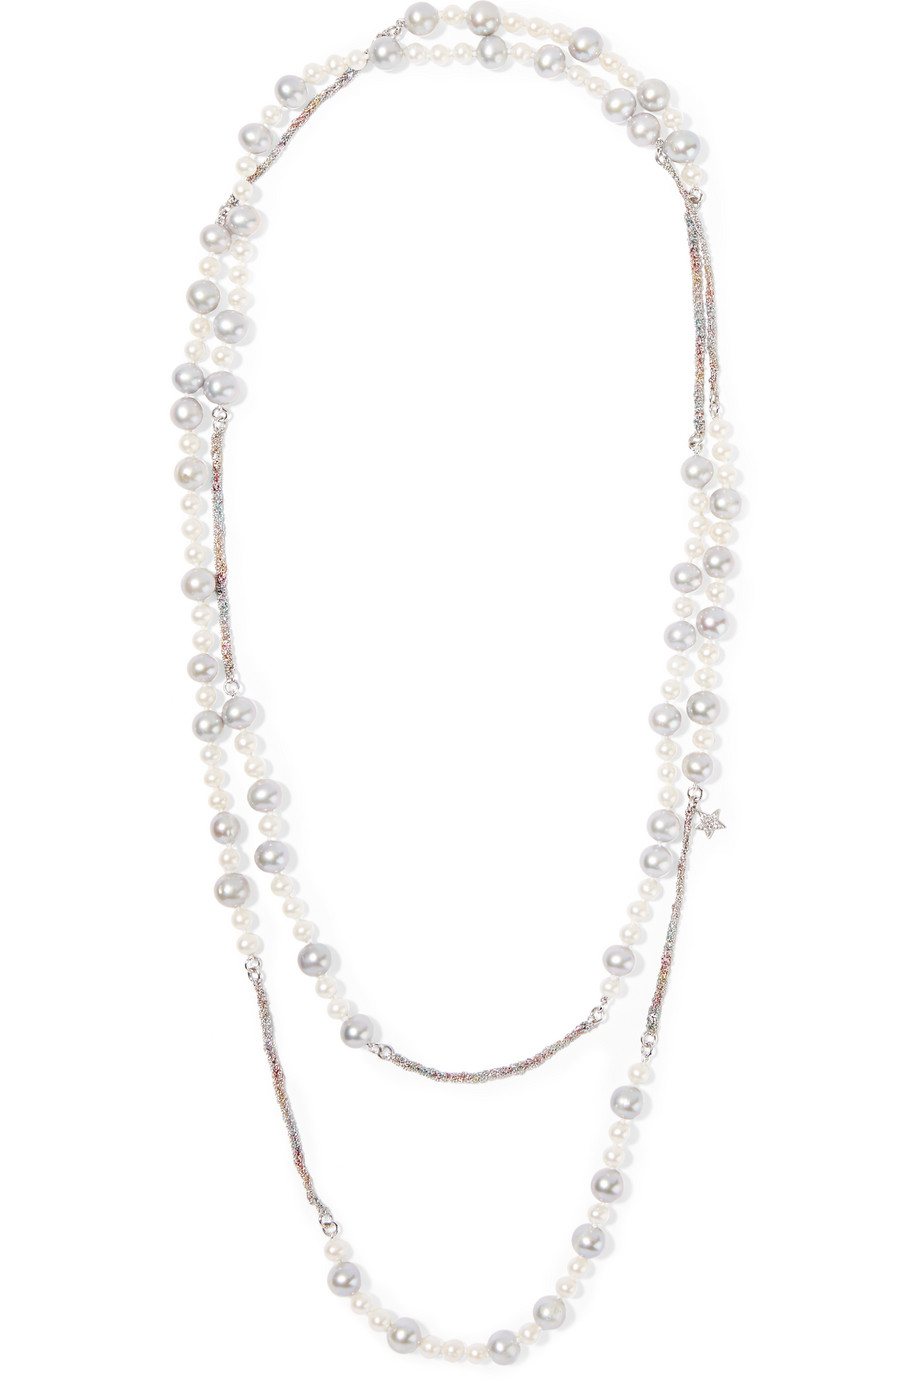 Carolina Bucci Superstellar 18-Karat White Gold and Silk Multi-Stone Necklace, White Gold/White, Women's